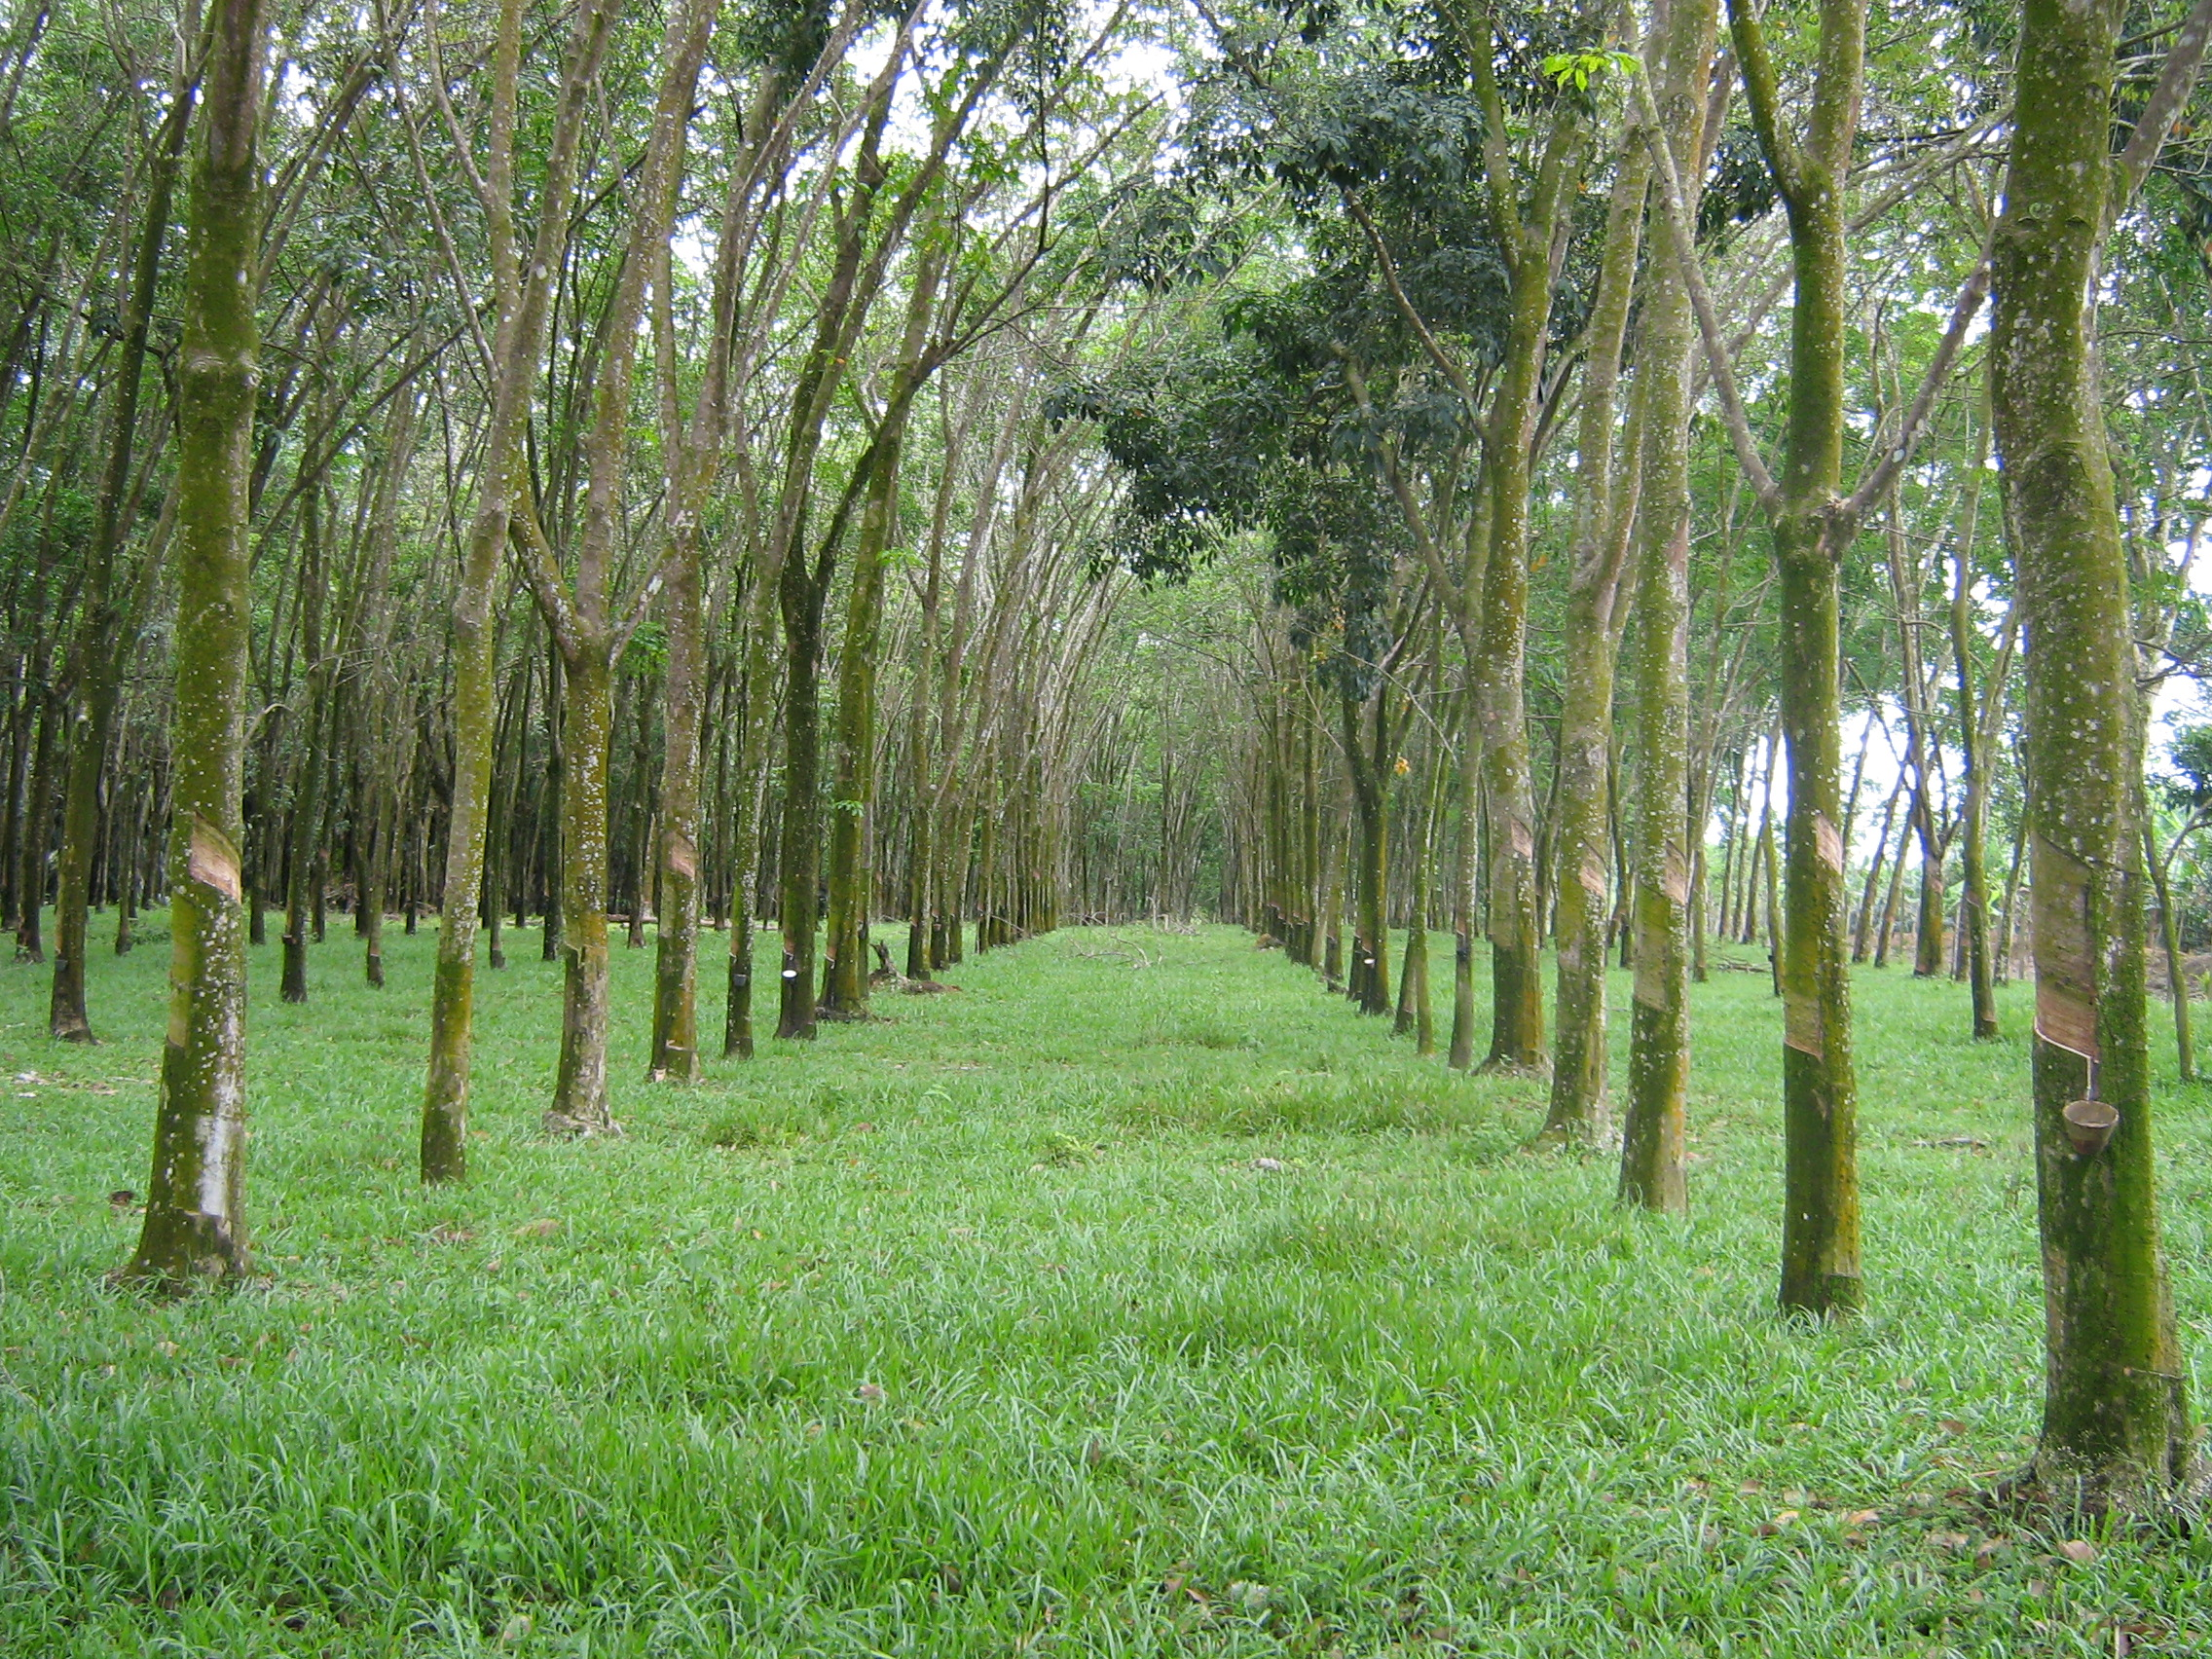 TREE PLANTATION, fast growing trees, timber investment